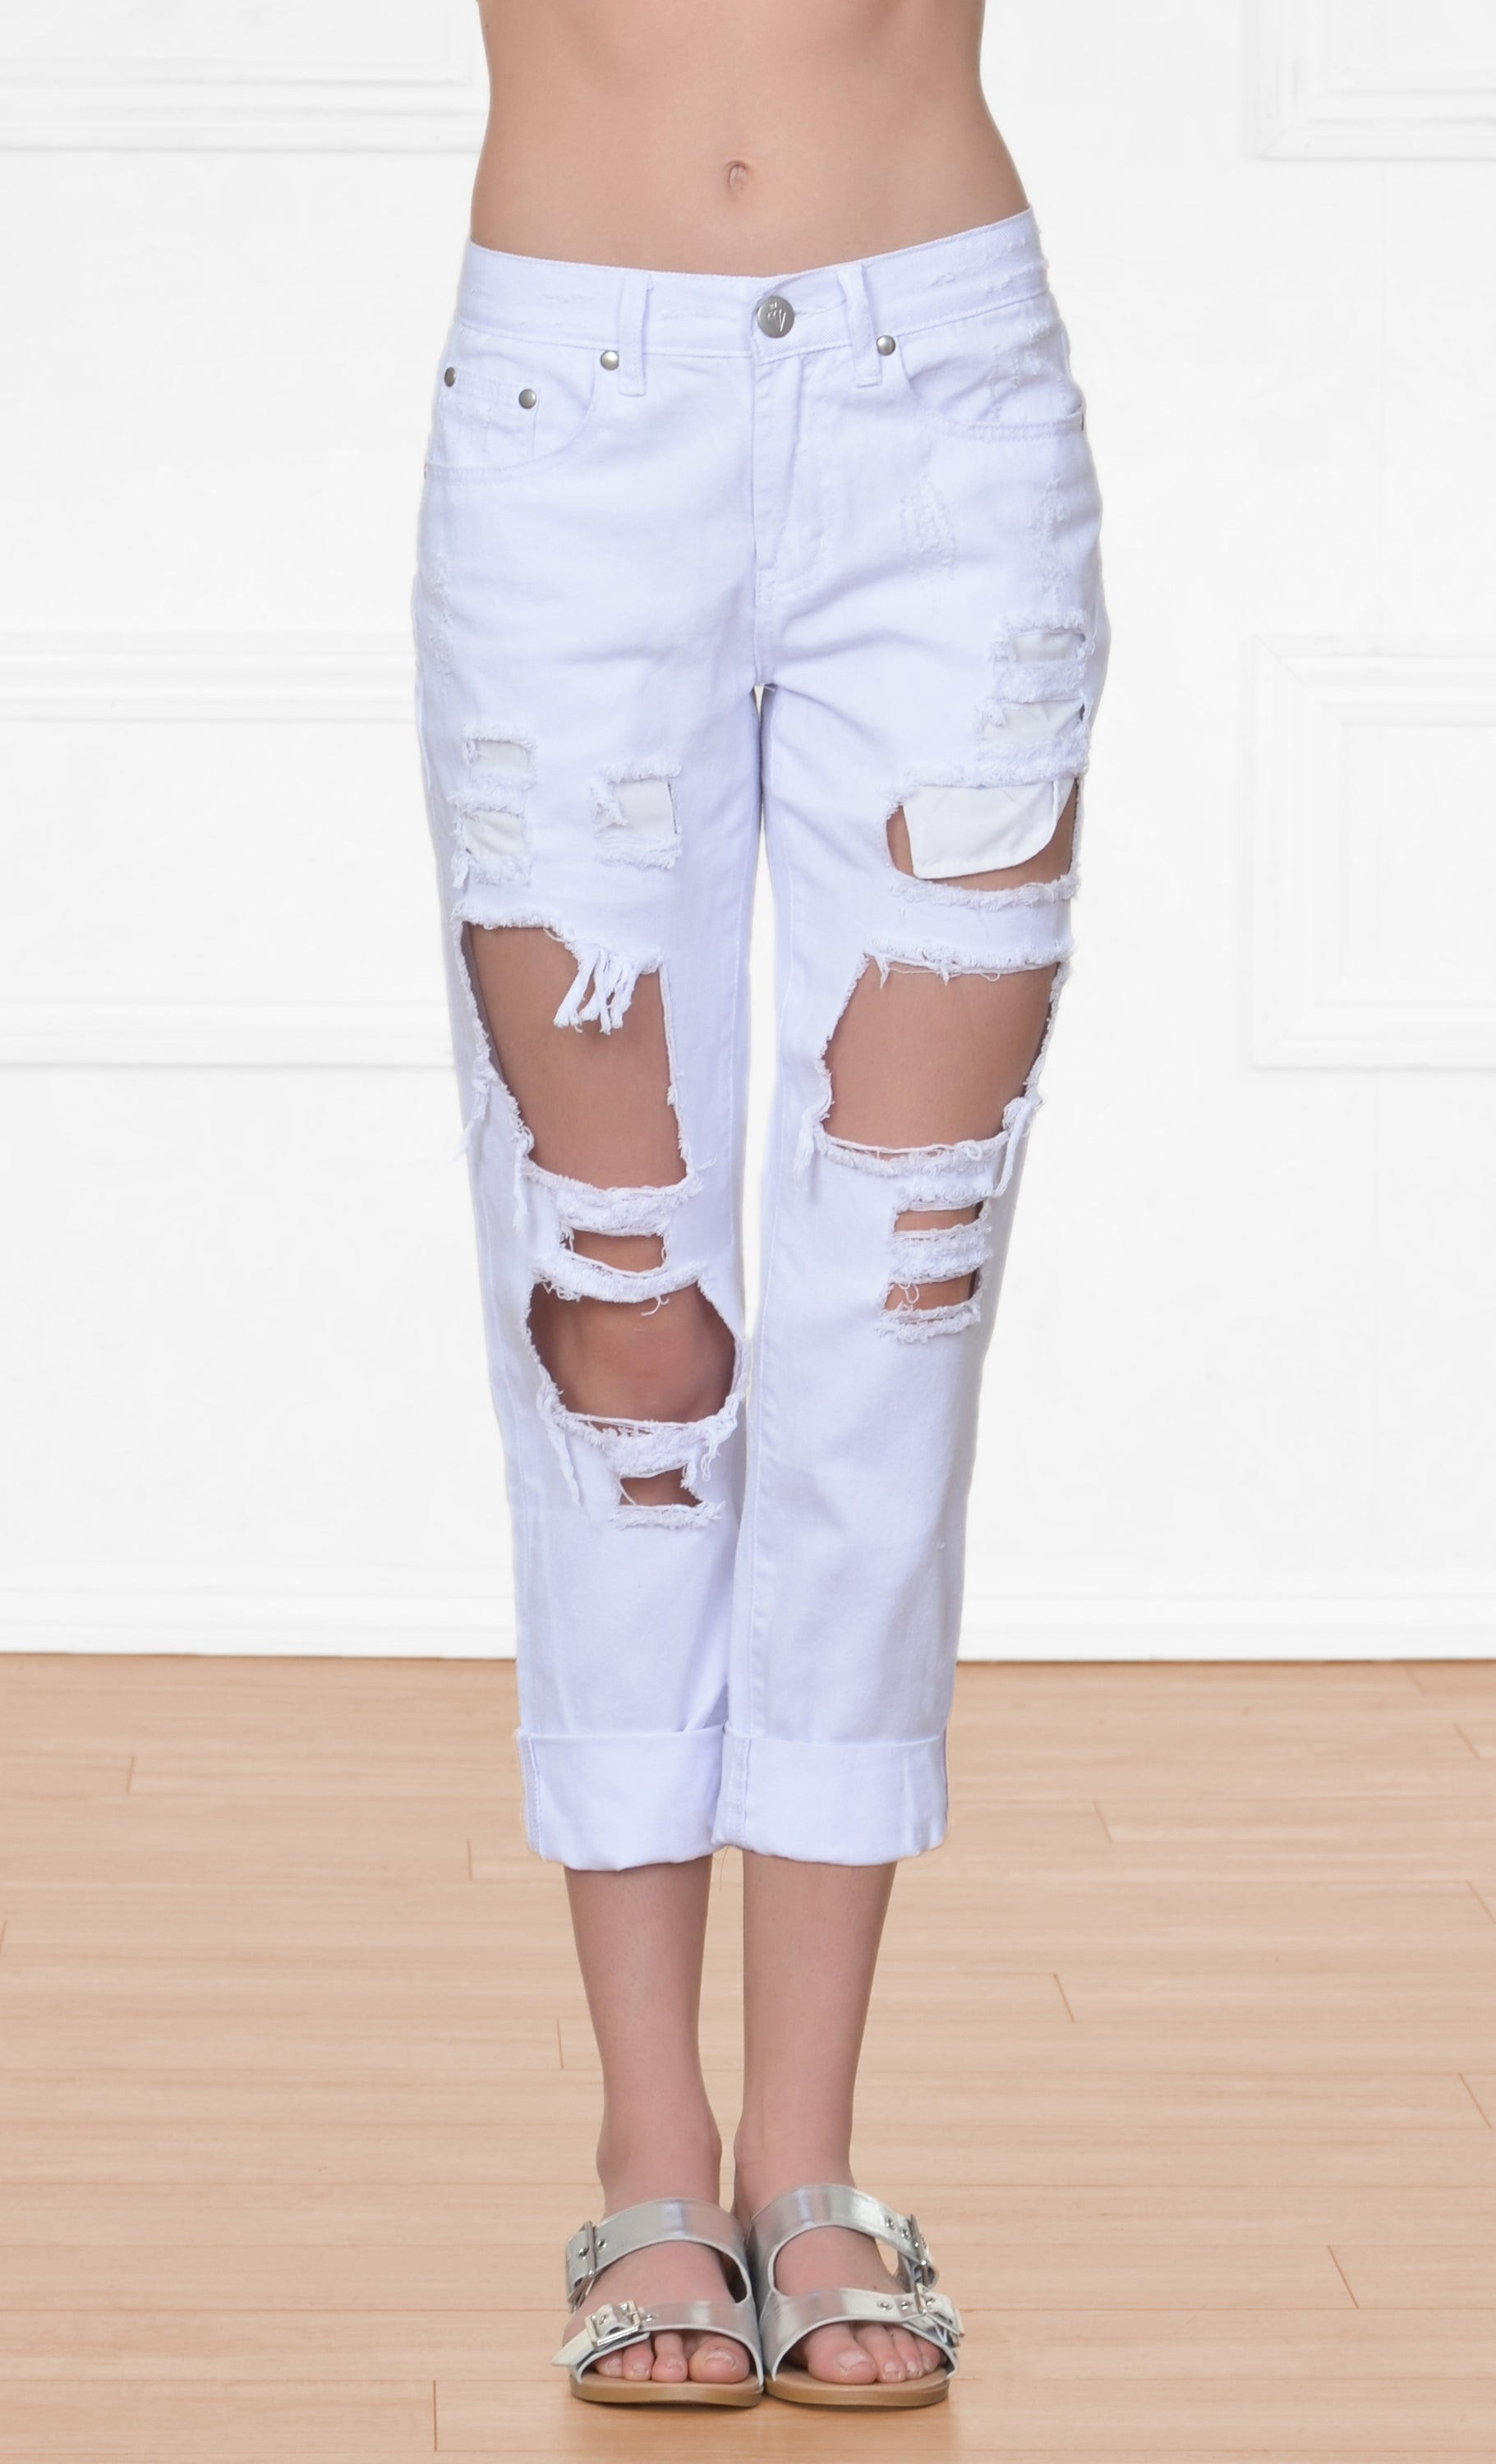 75507fbe9f50b Indie XO Beach Bum White Denim Distressed Destructed Destroyed Boyfriend  Frayed Ripped Jeans Pants